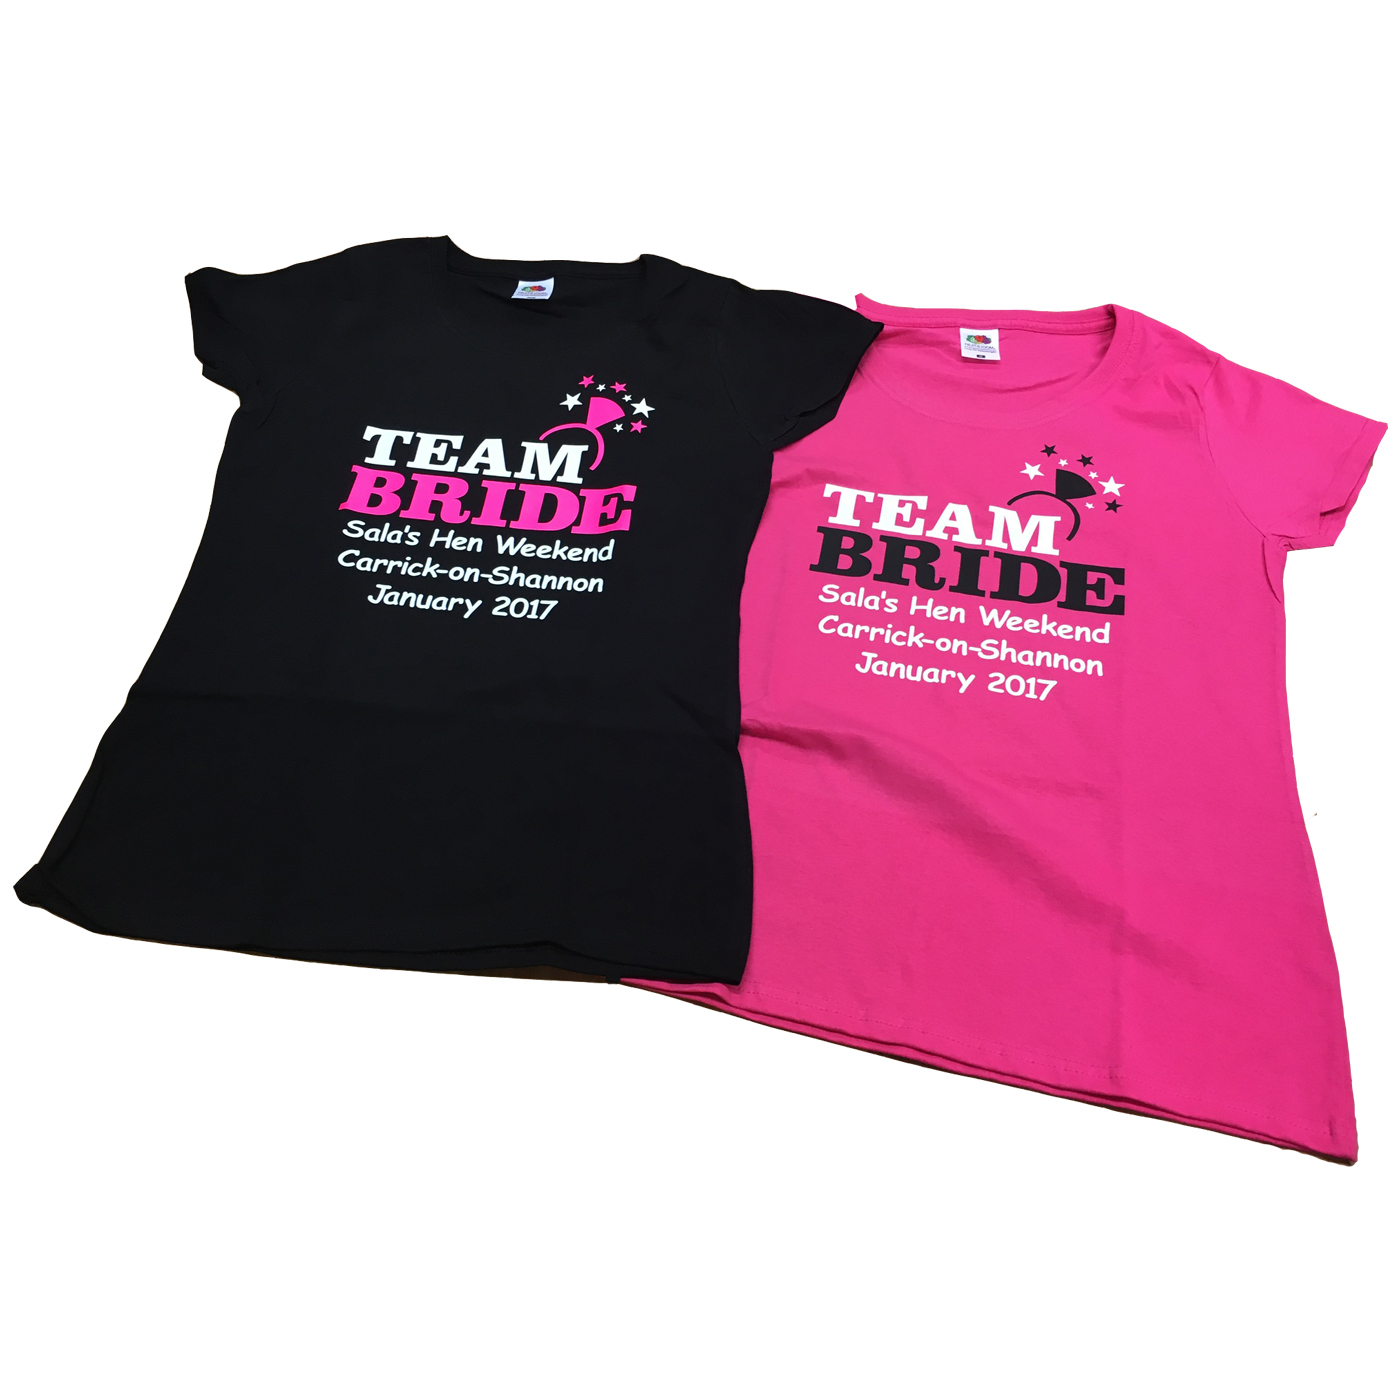 Team bride ring t shirt hen party t shirts forever for Hen party t shirts